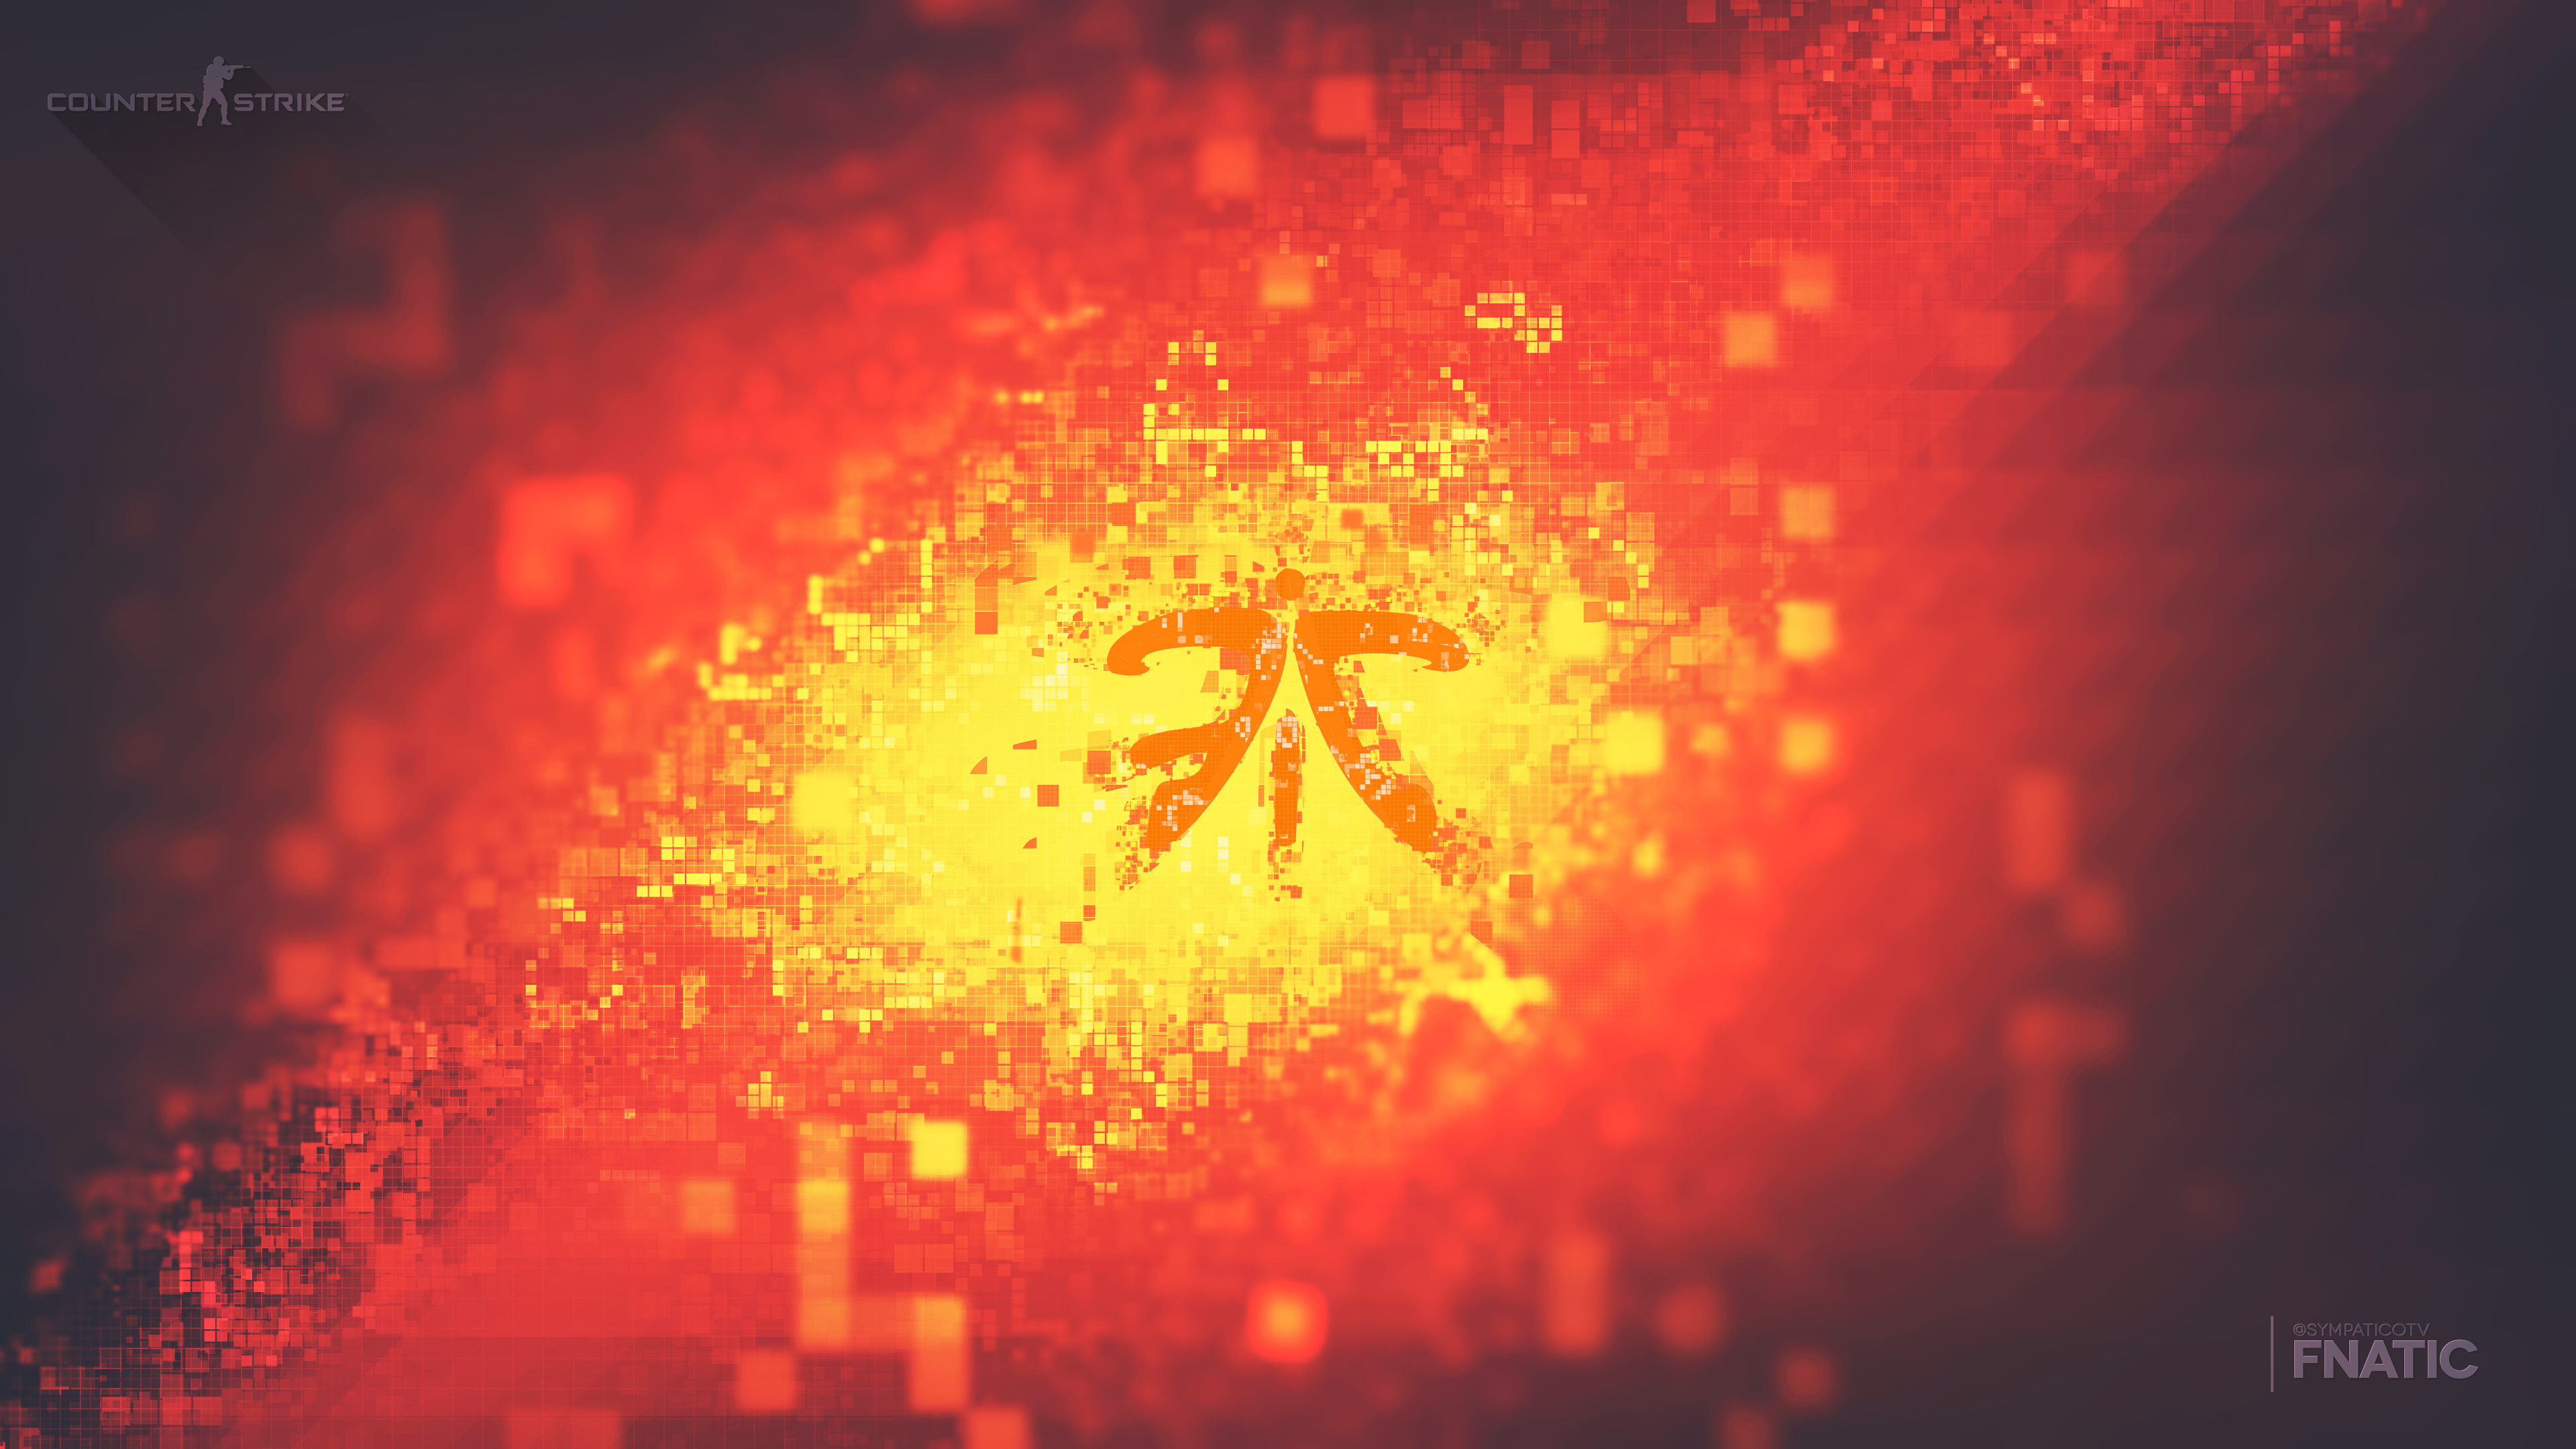 3840x2160 Free Photos Fnatic HD.